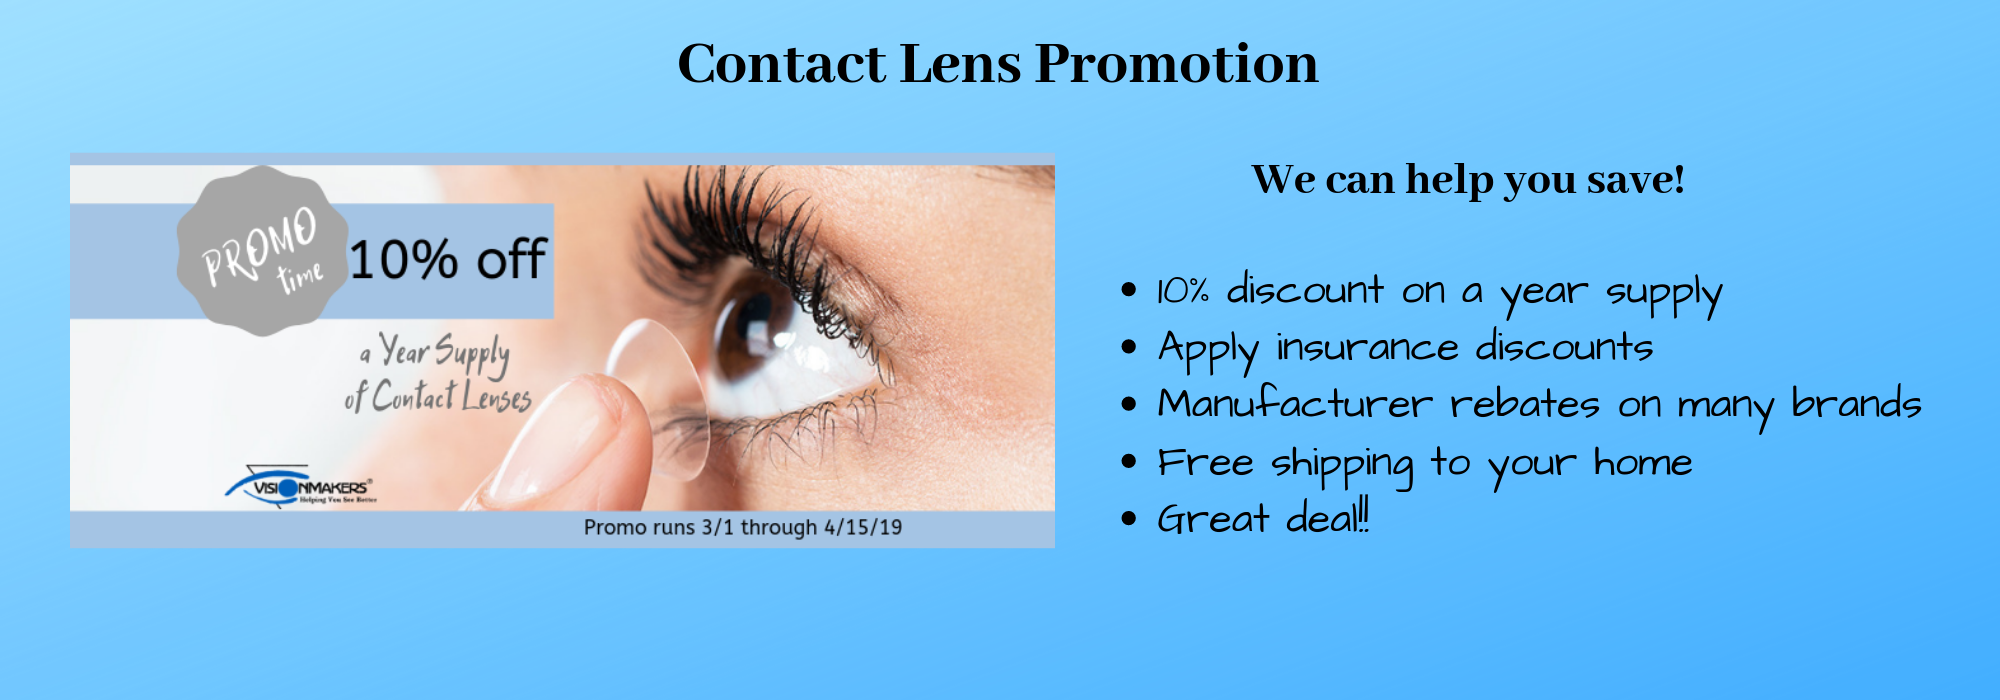 Contact-Lens-Promotion.png